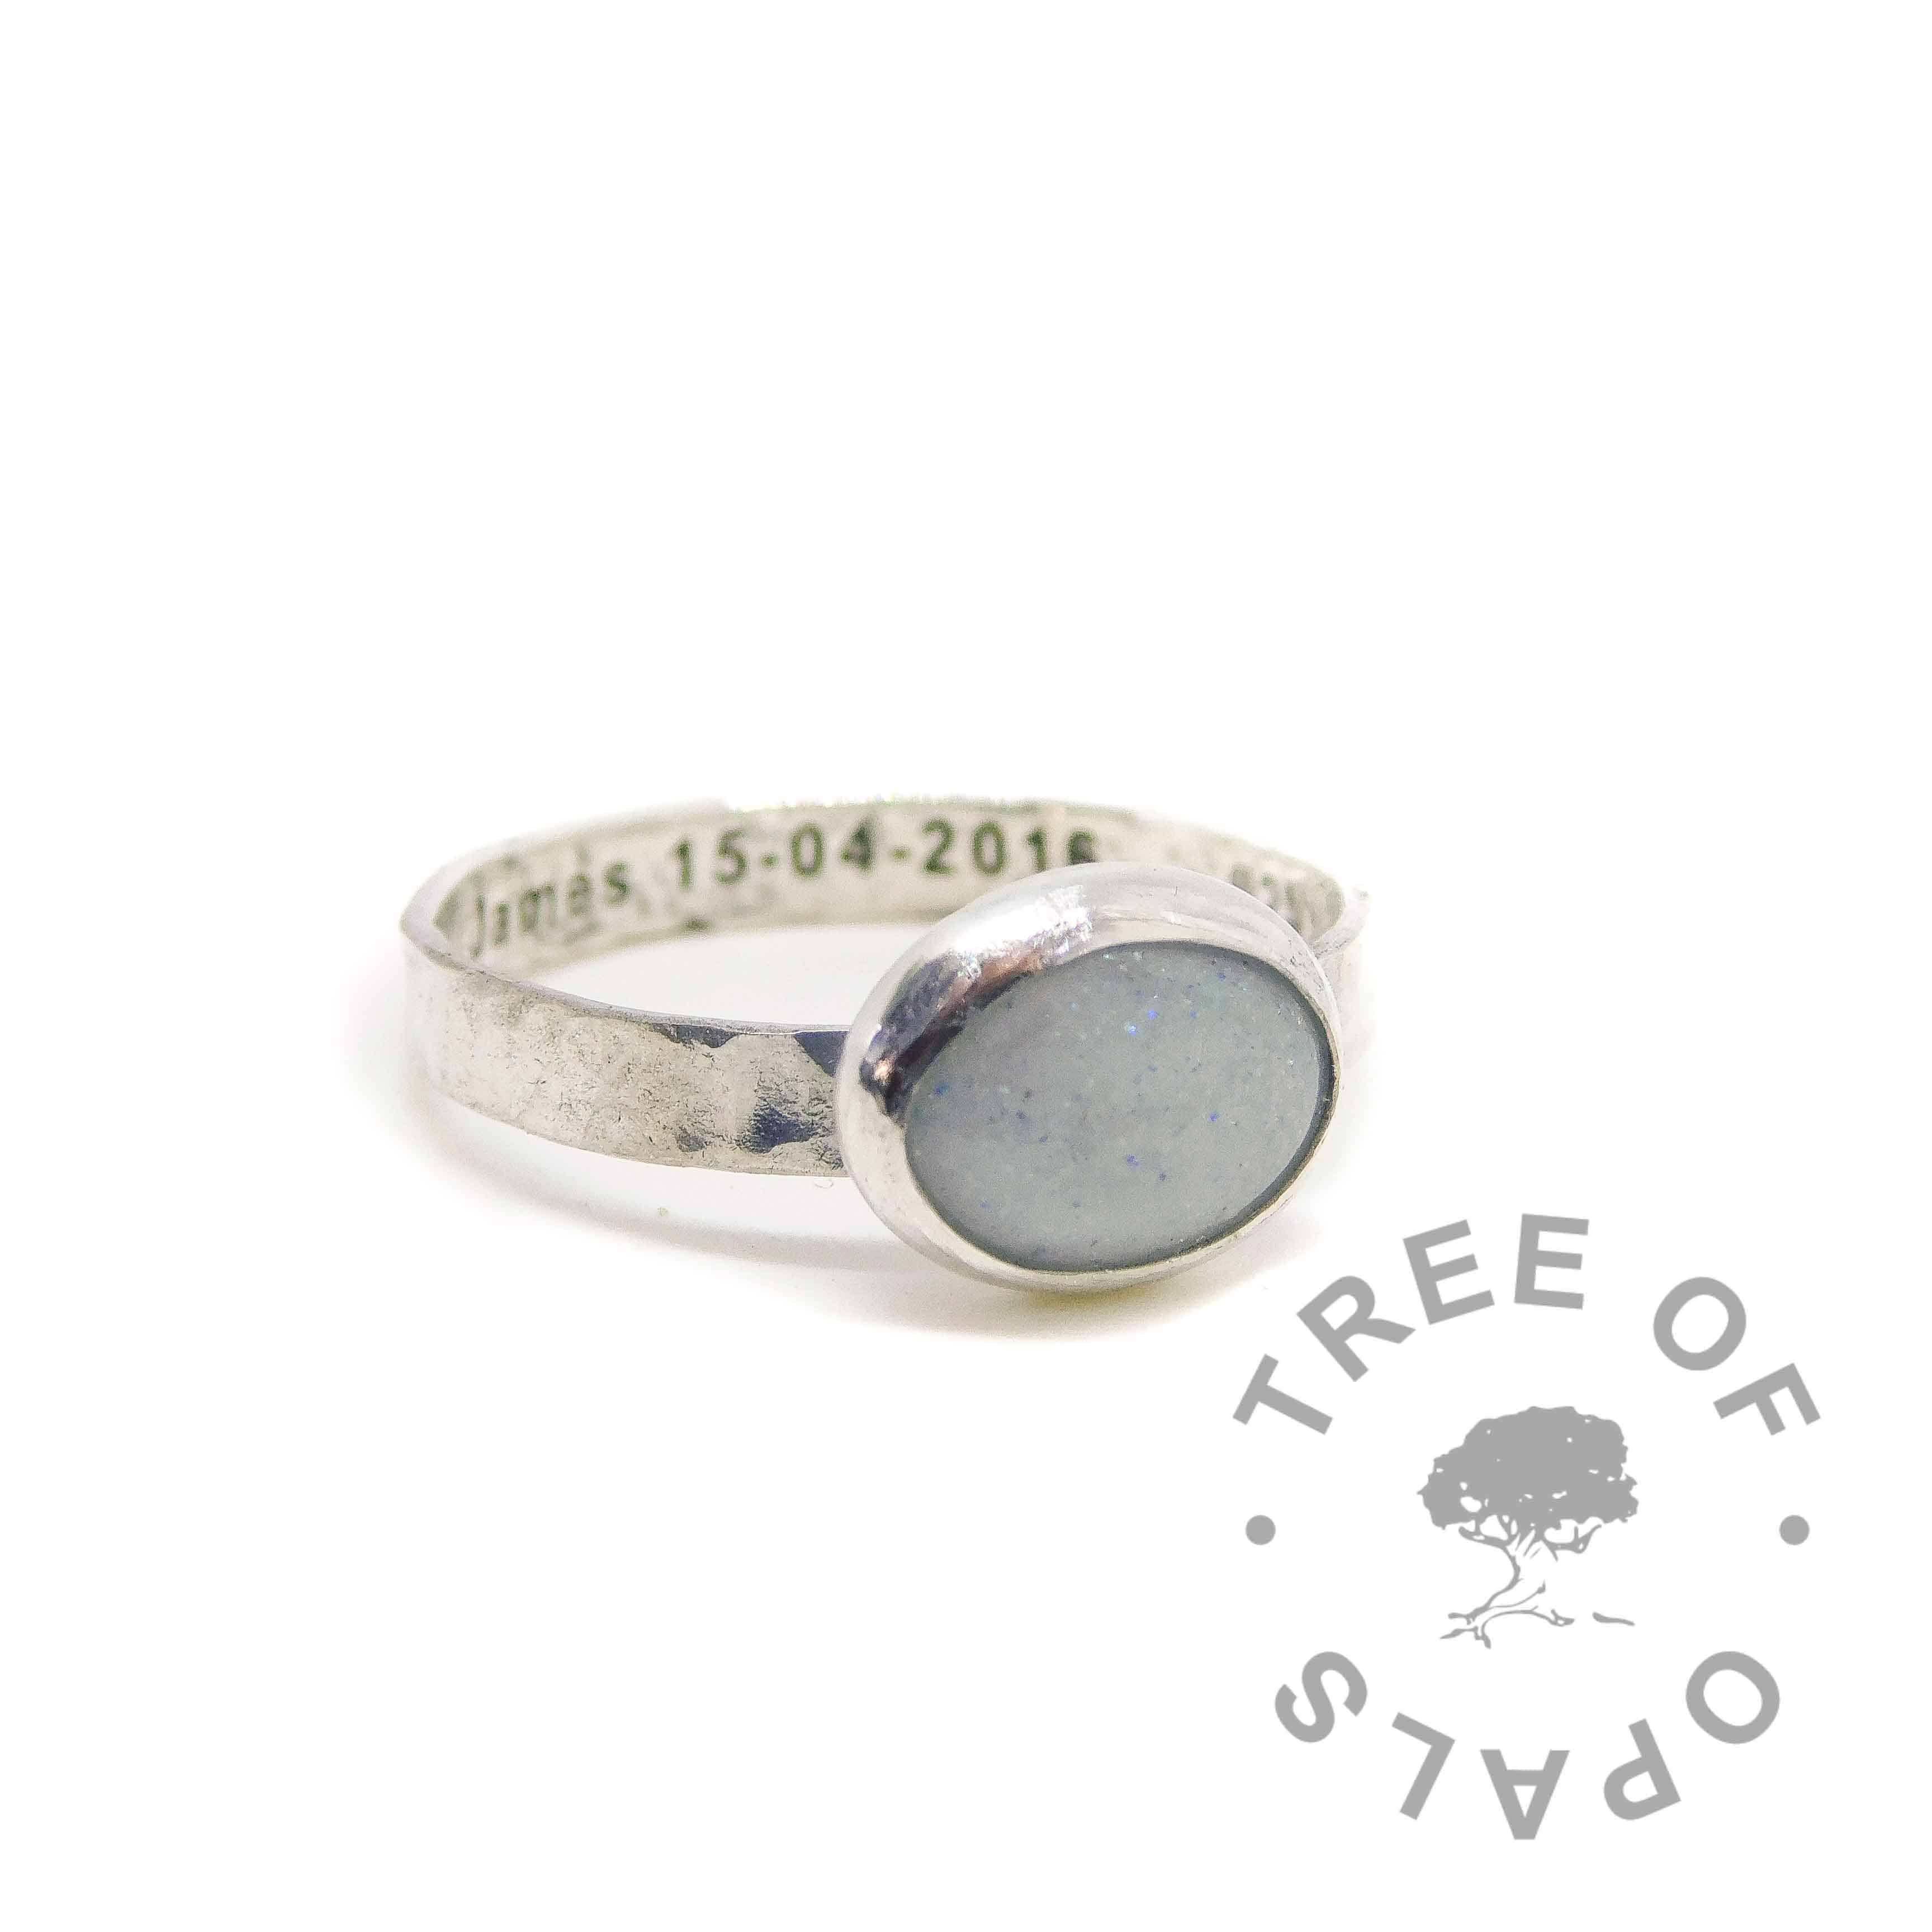 breastmilk ring engraved inside with baby name and date of birth, breastmilk in resin with subtle blue sparkle and diamond powder for April birthstone or two year breastfeeding award diamond boobies